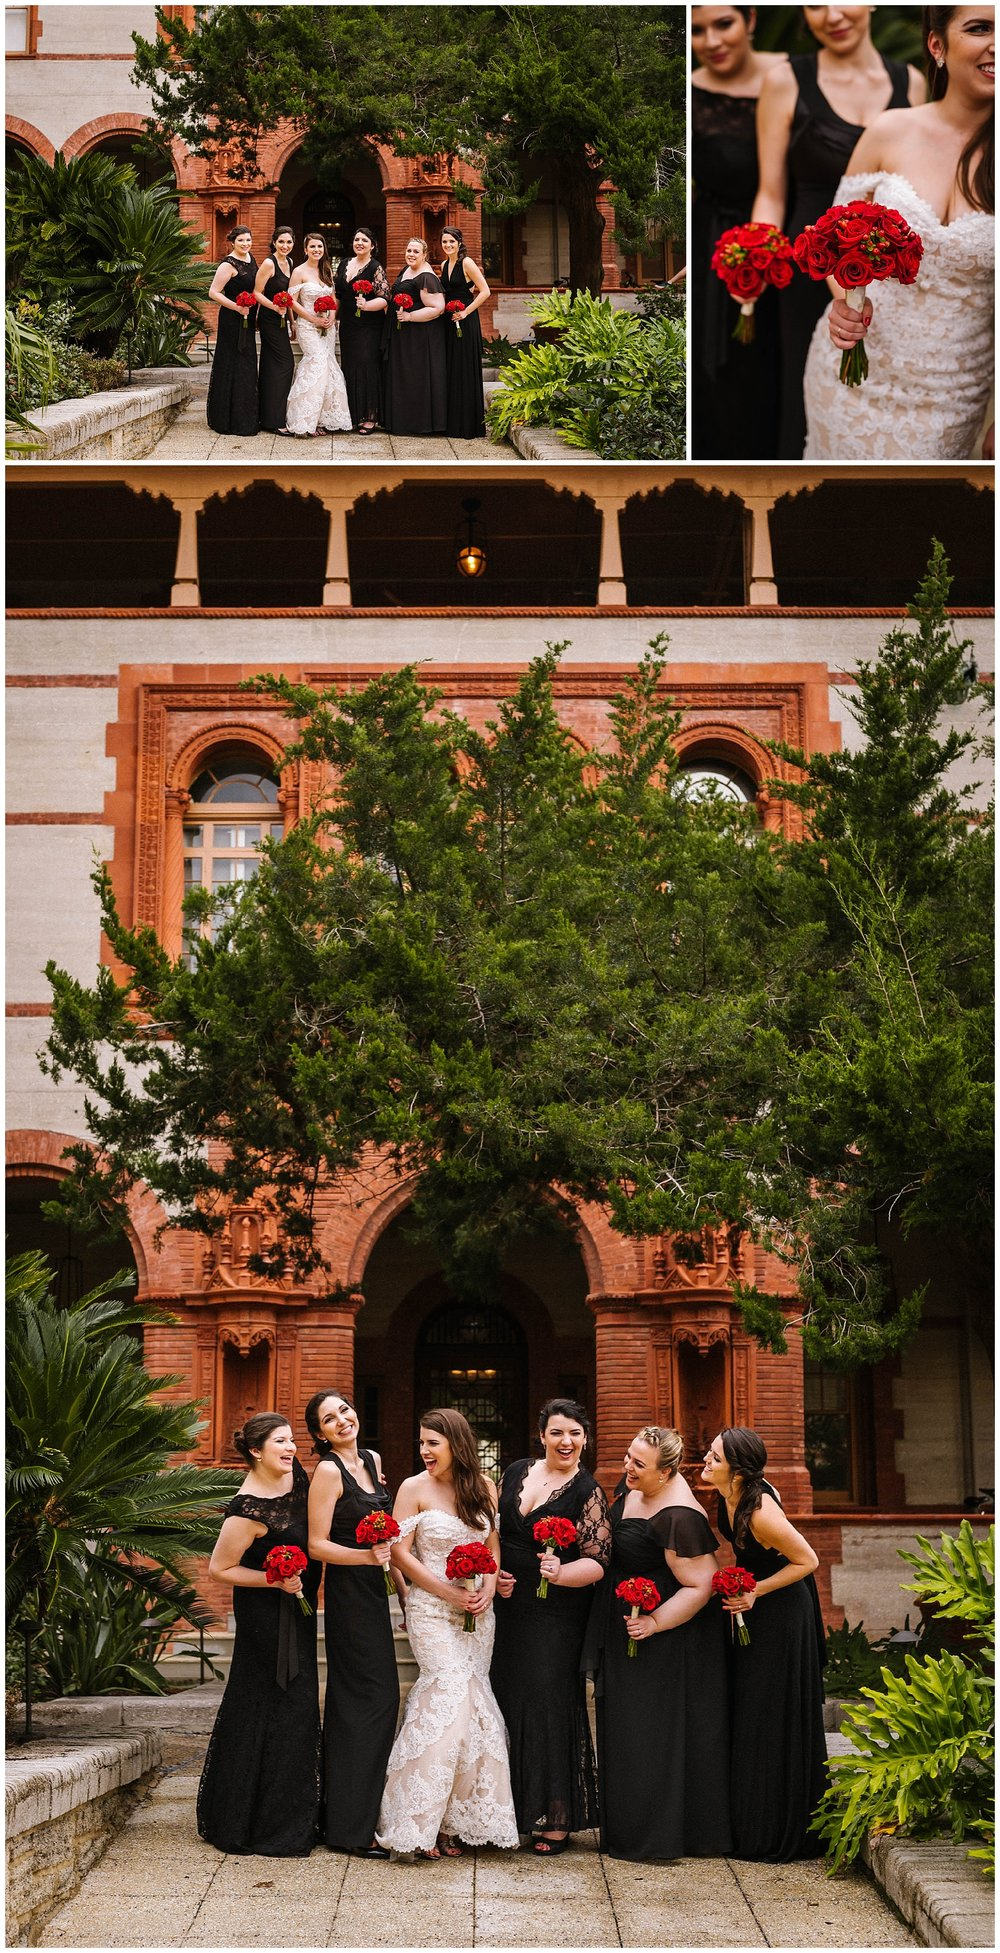 st-augustine-wedding-photographer-rainy-lightner-museum-flagler-casa-monica_0013.jpg